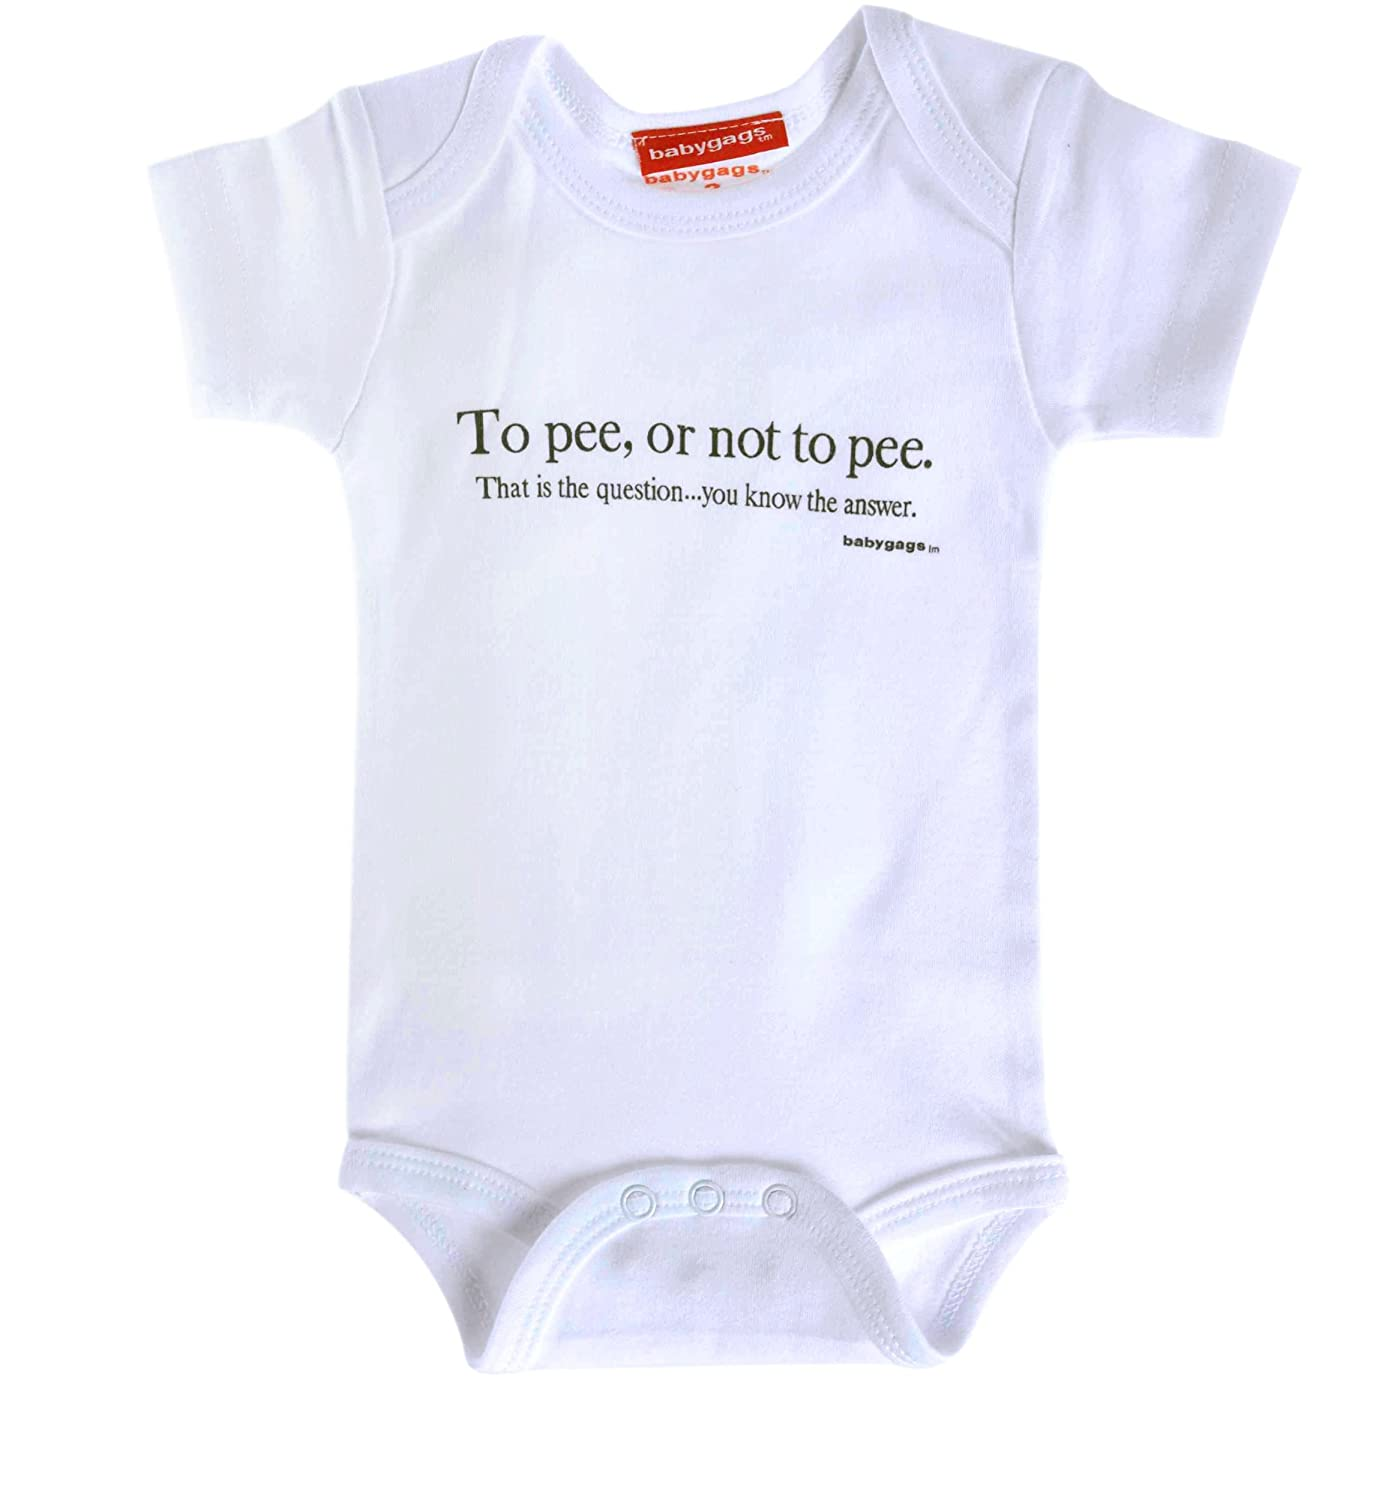 Amazon Babygags Bodysuit Infant And Toddler Bodysuits Clothing